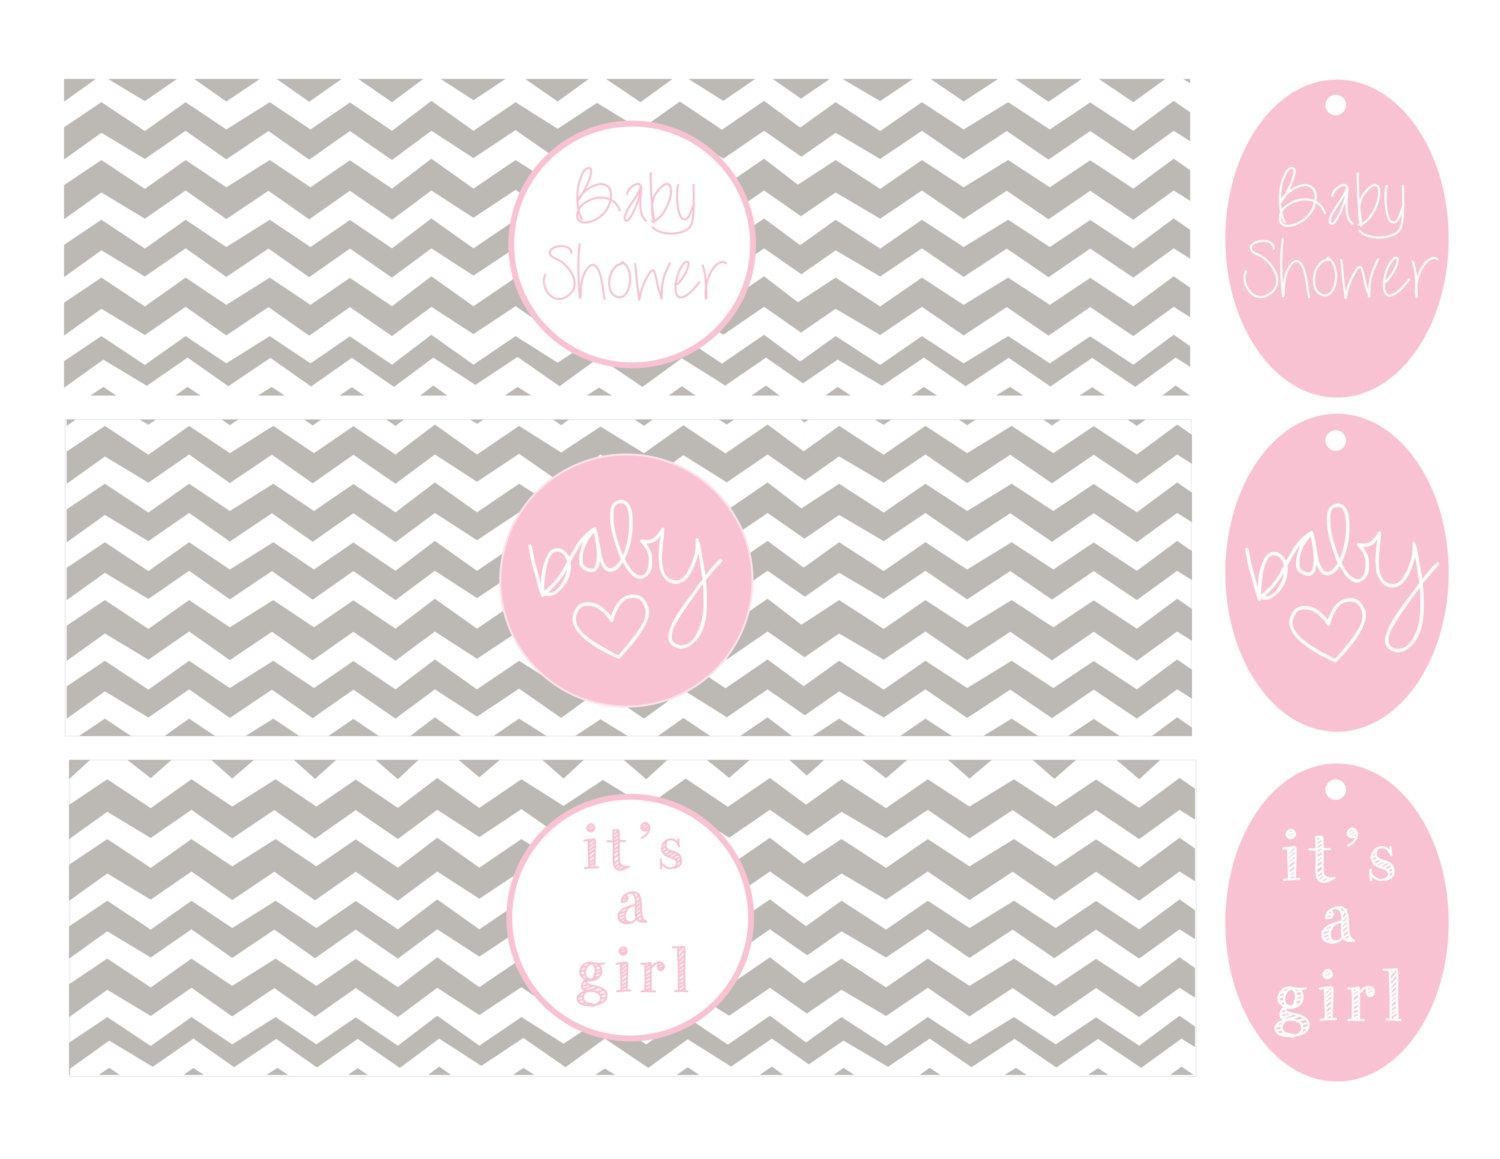 Free Printable Water Bottle Labels For Baby Shower - Baby Shower Ideas - Free Printable Baby Shower Labels For Bottled Water